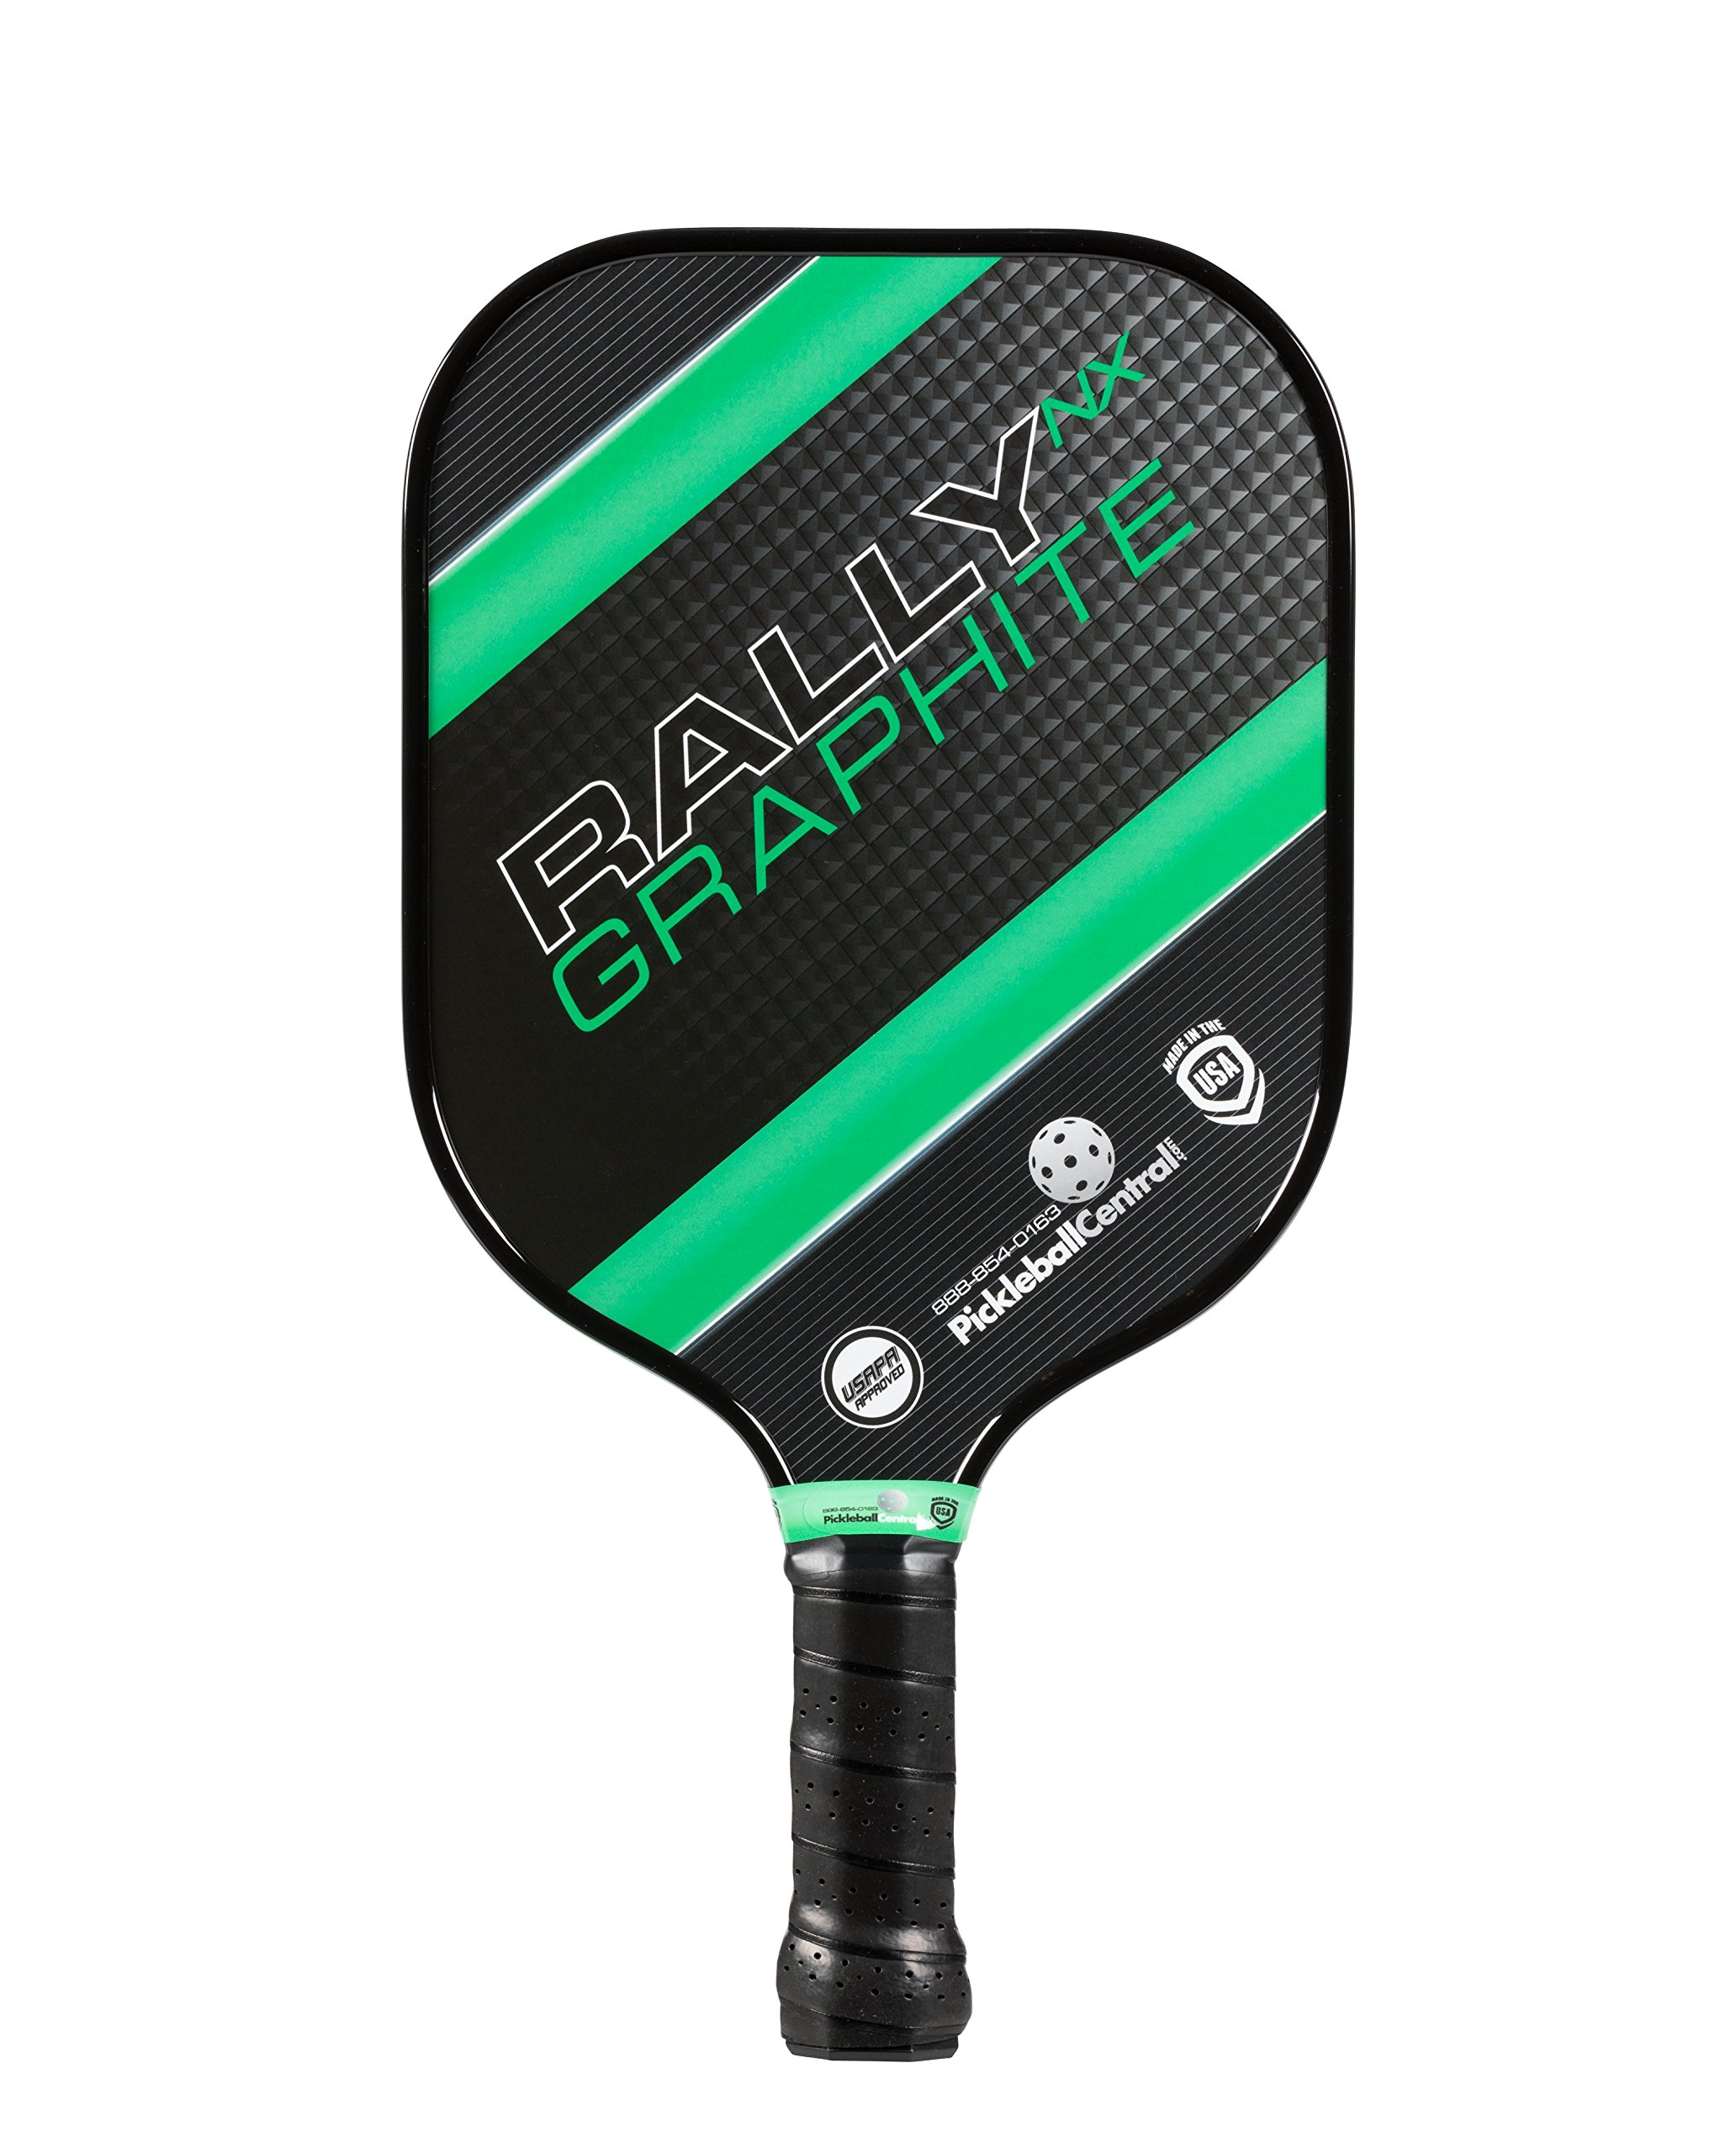 Rally NX Graphite Pickleball Paddle (Green) - Nomex Honeycomb Core & Graphite Face - Lightweight 7.3-7.7 oz. - Meets USAPA Specs.